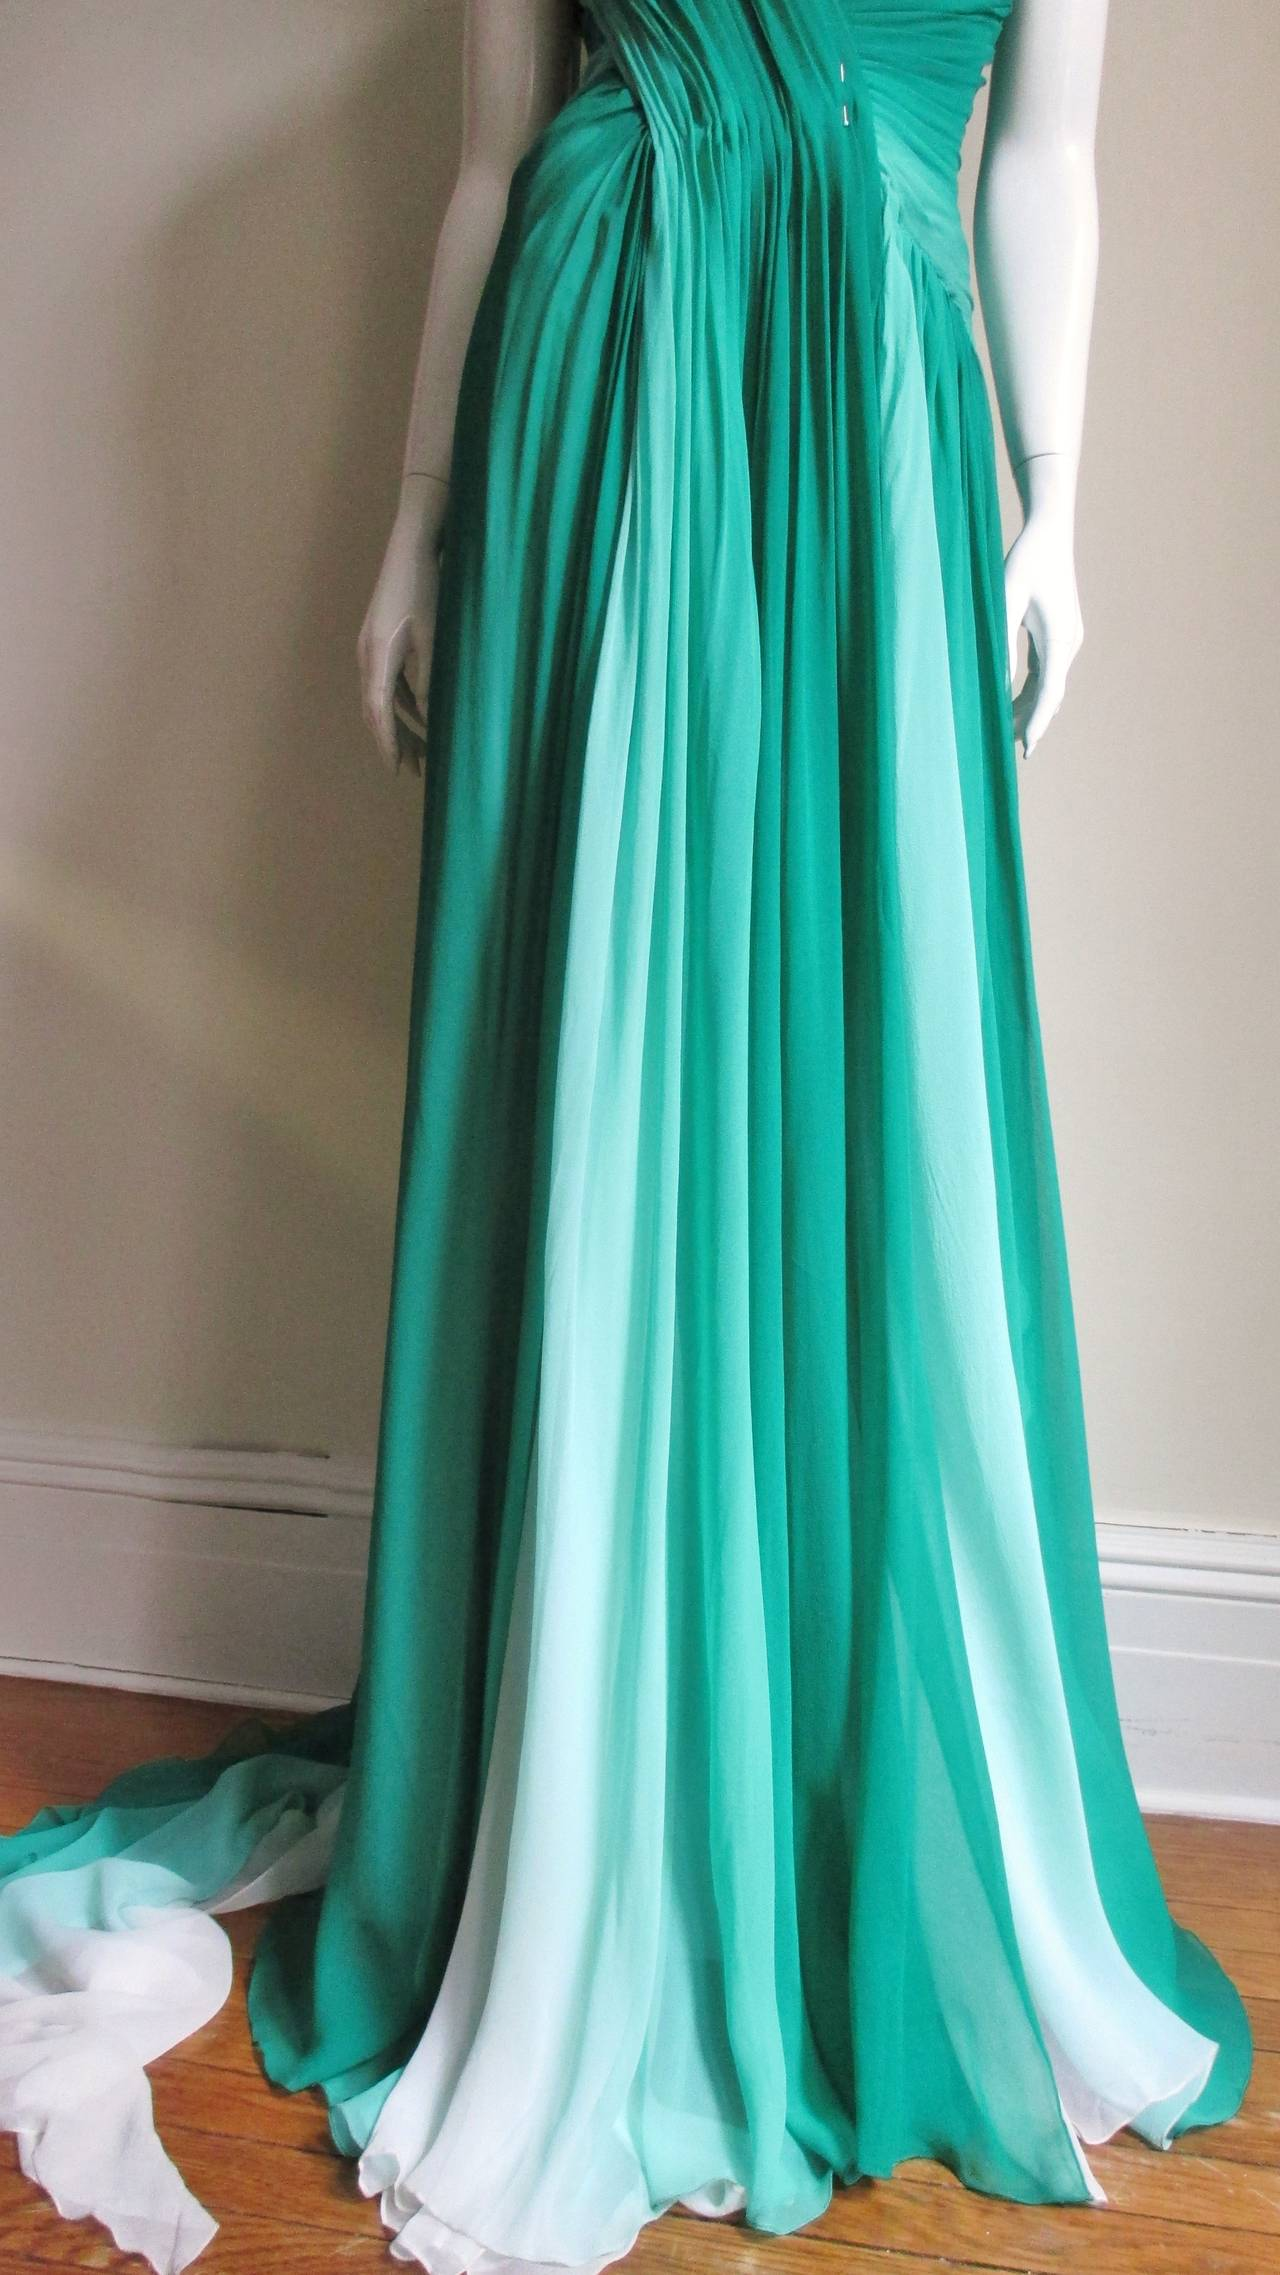 Monique L'huillier Emerald Silk Ombre Gown With Train In New never worn Condition For Sale In New York, NY